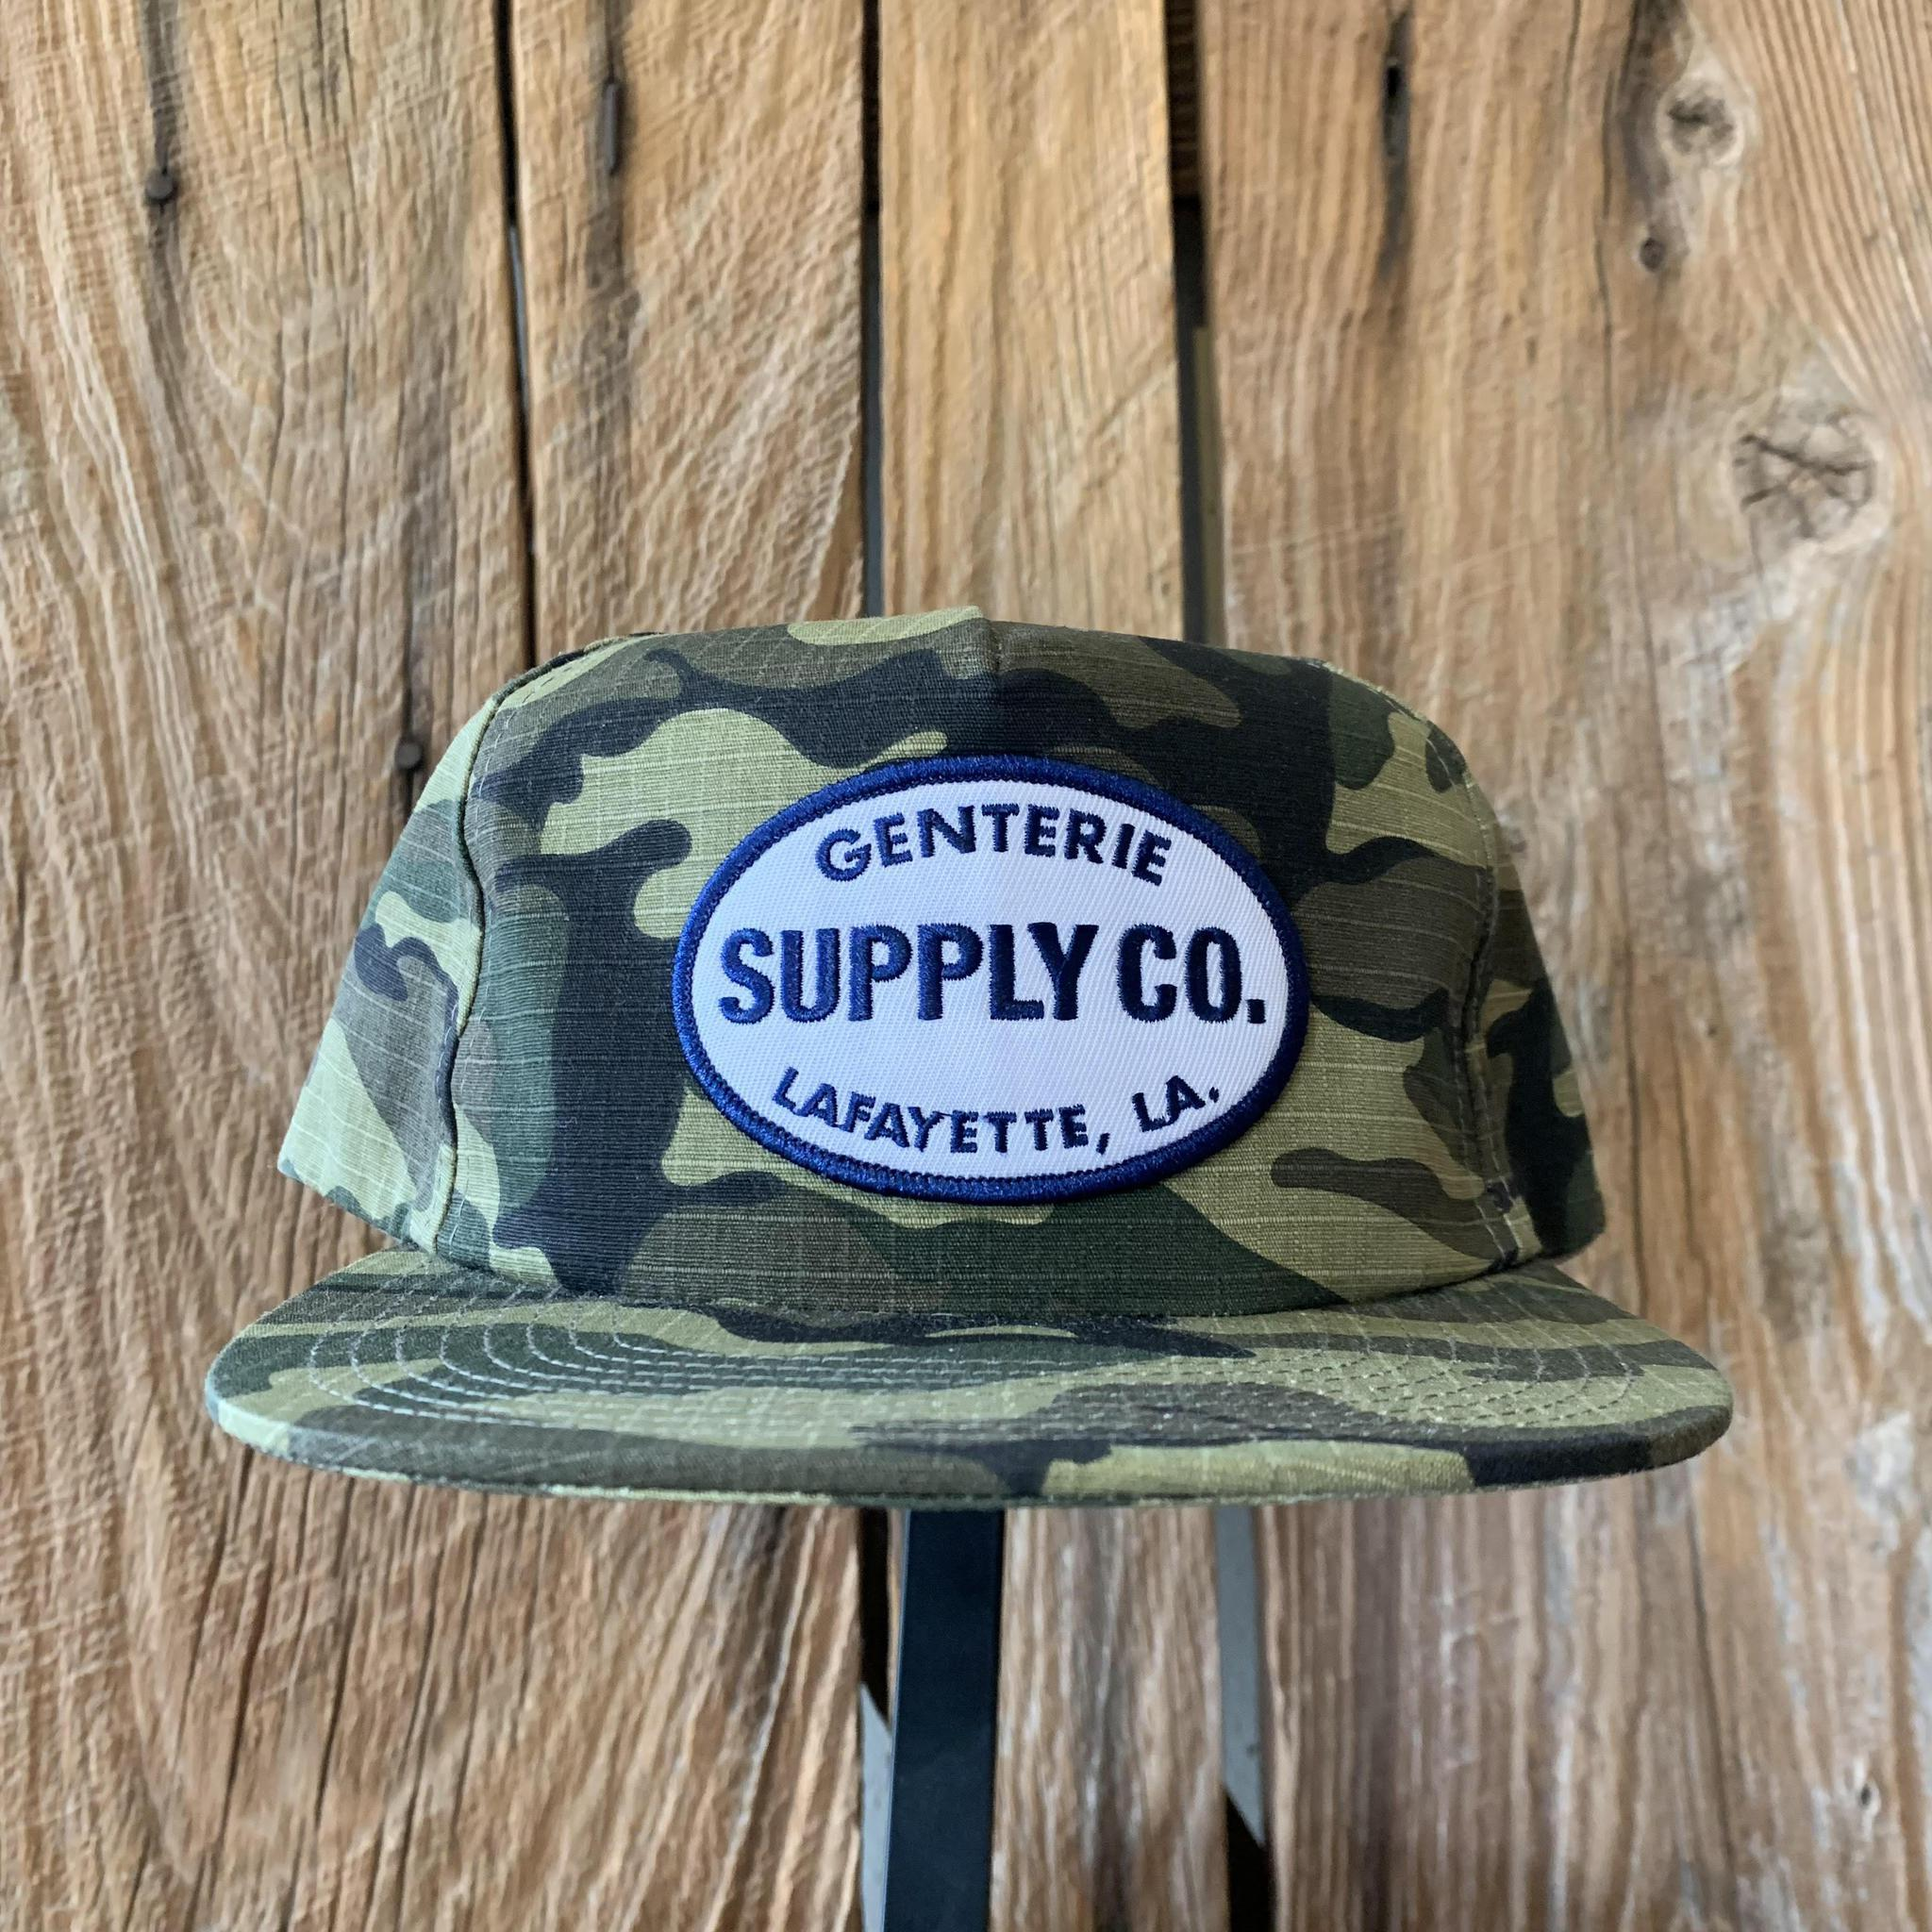 Genterie Supply Co. Ballcap - Camouflage Ripstop